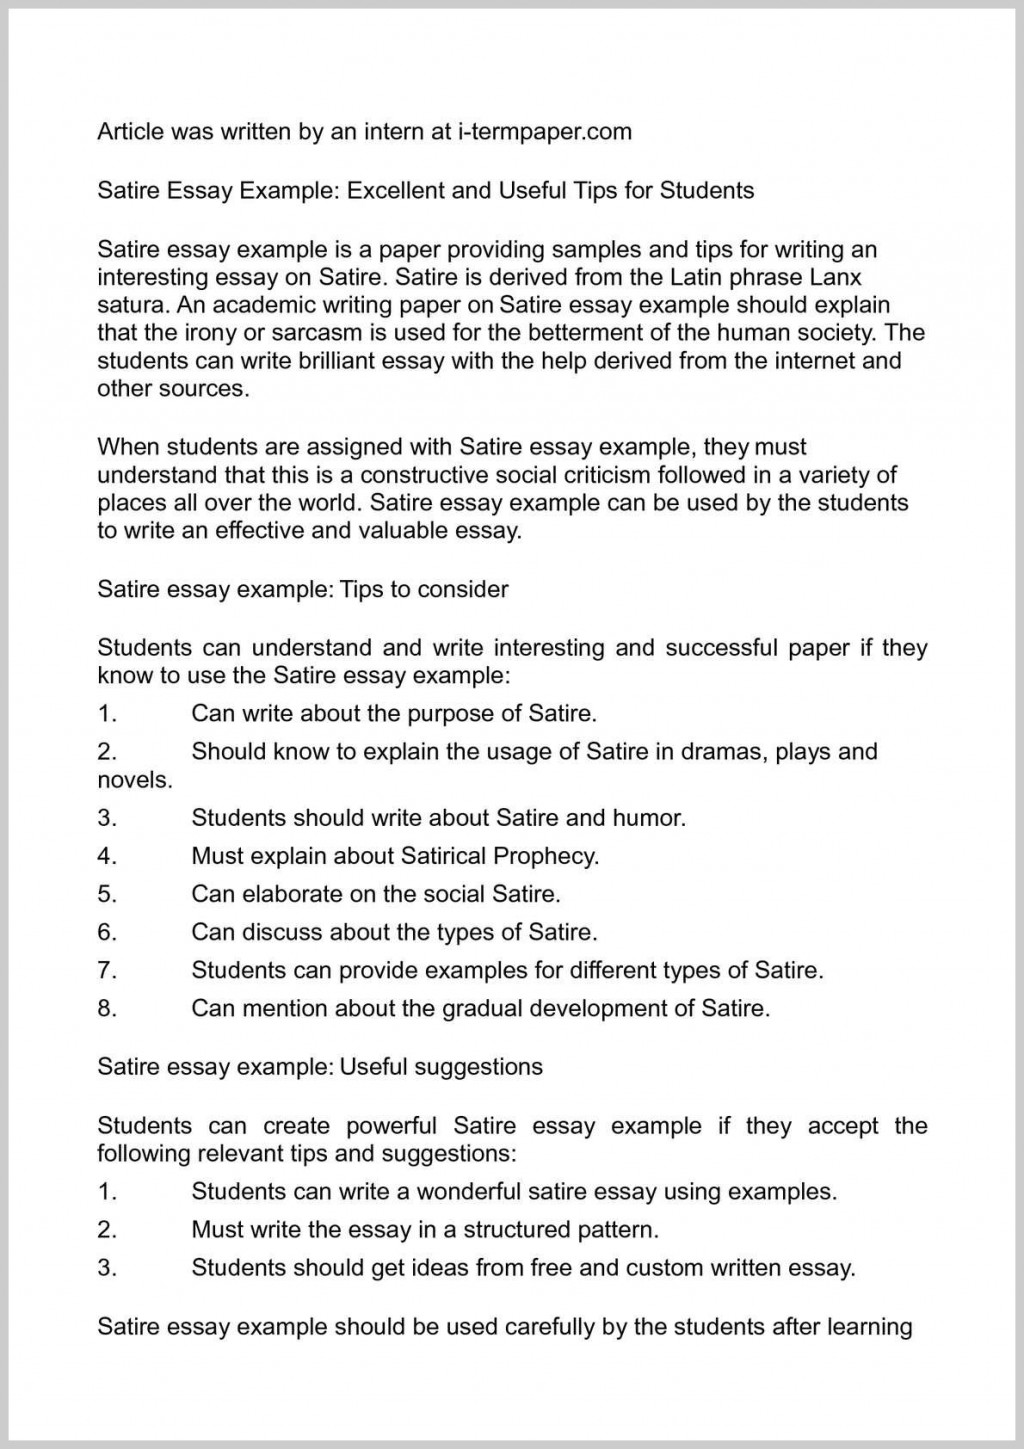 014 Essay Satiric Negative Impacts Of Social Media The Best Writing Satirical Topics Frightening Good Topic Ideas Large